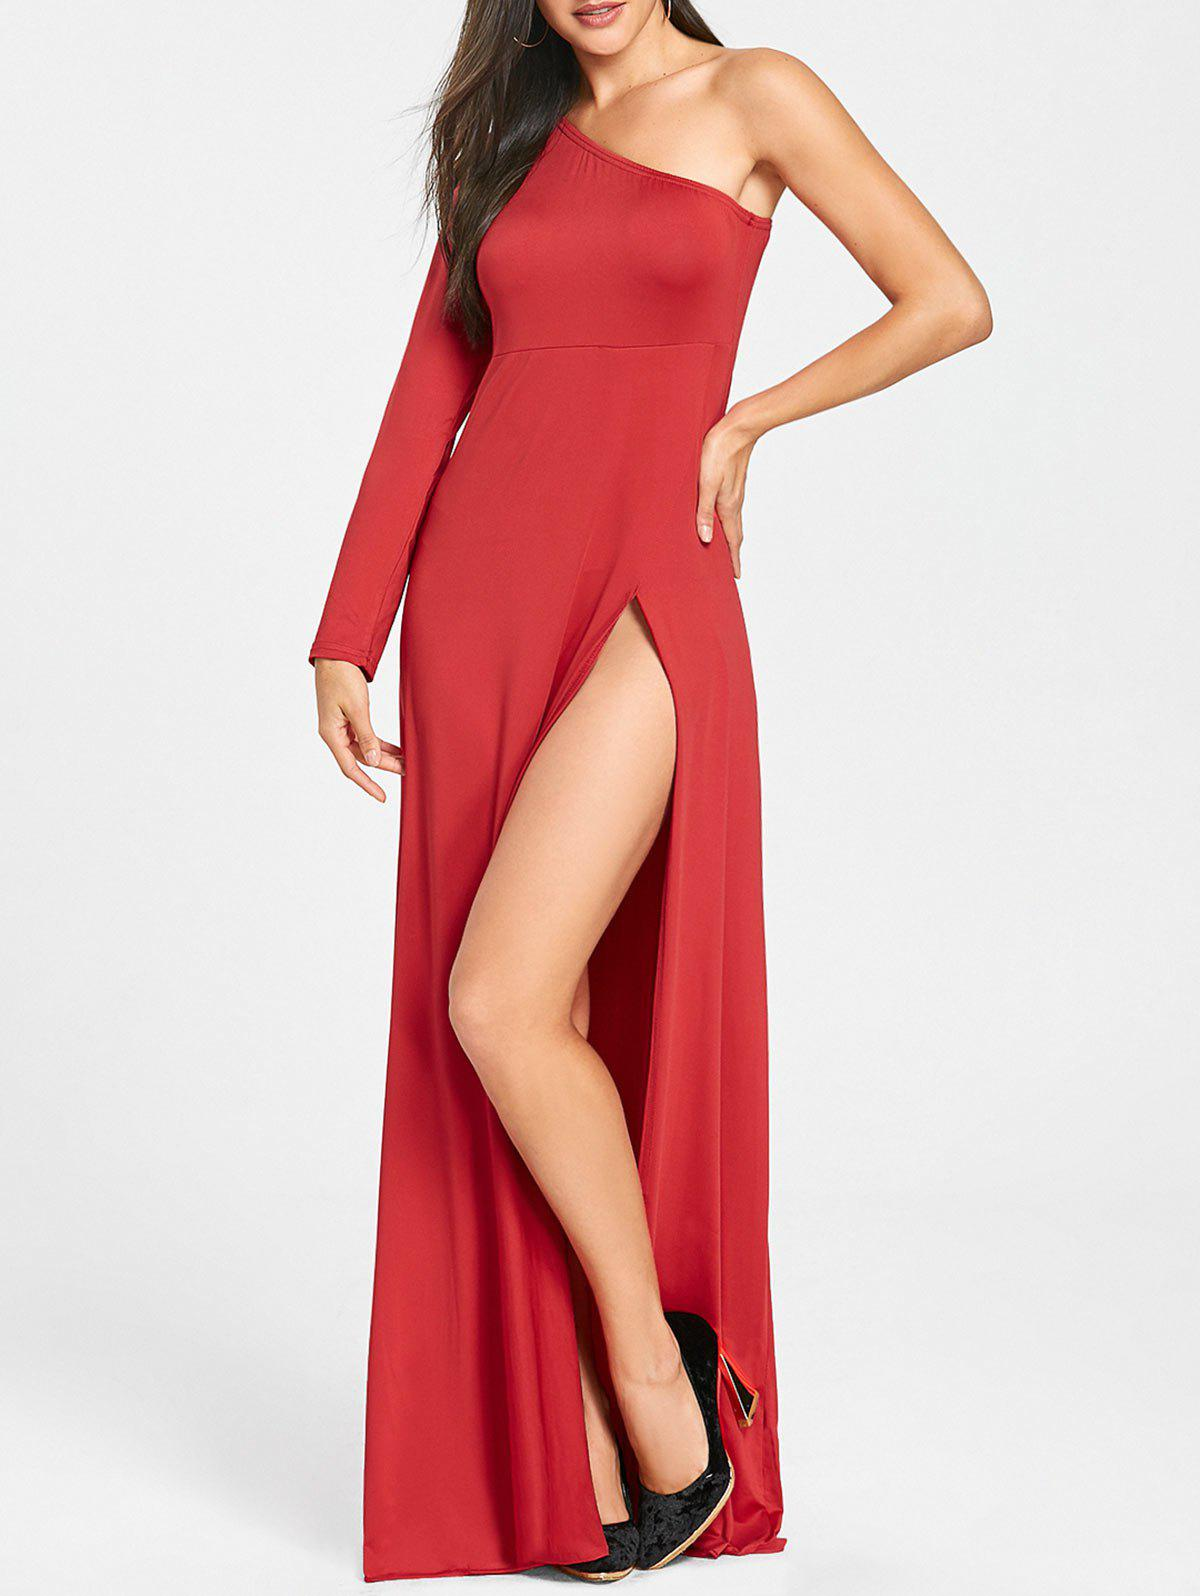 New One Shoulder Empire Waist High Slit Dress